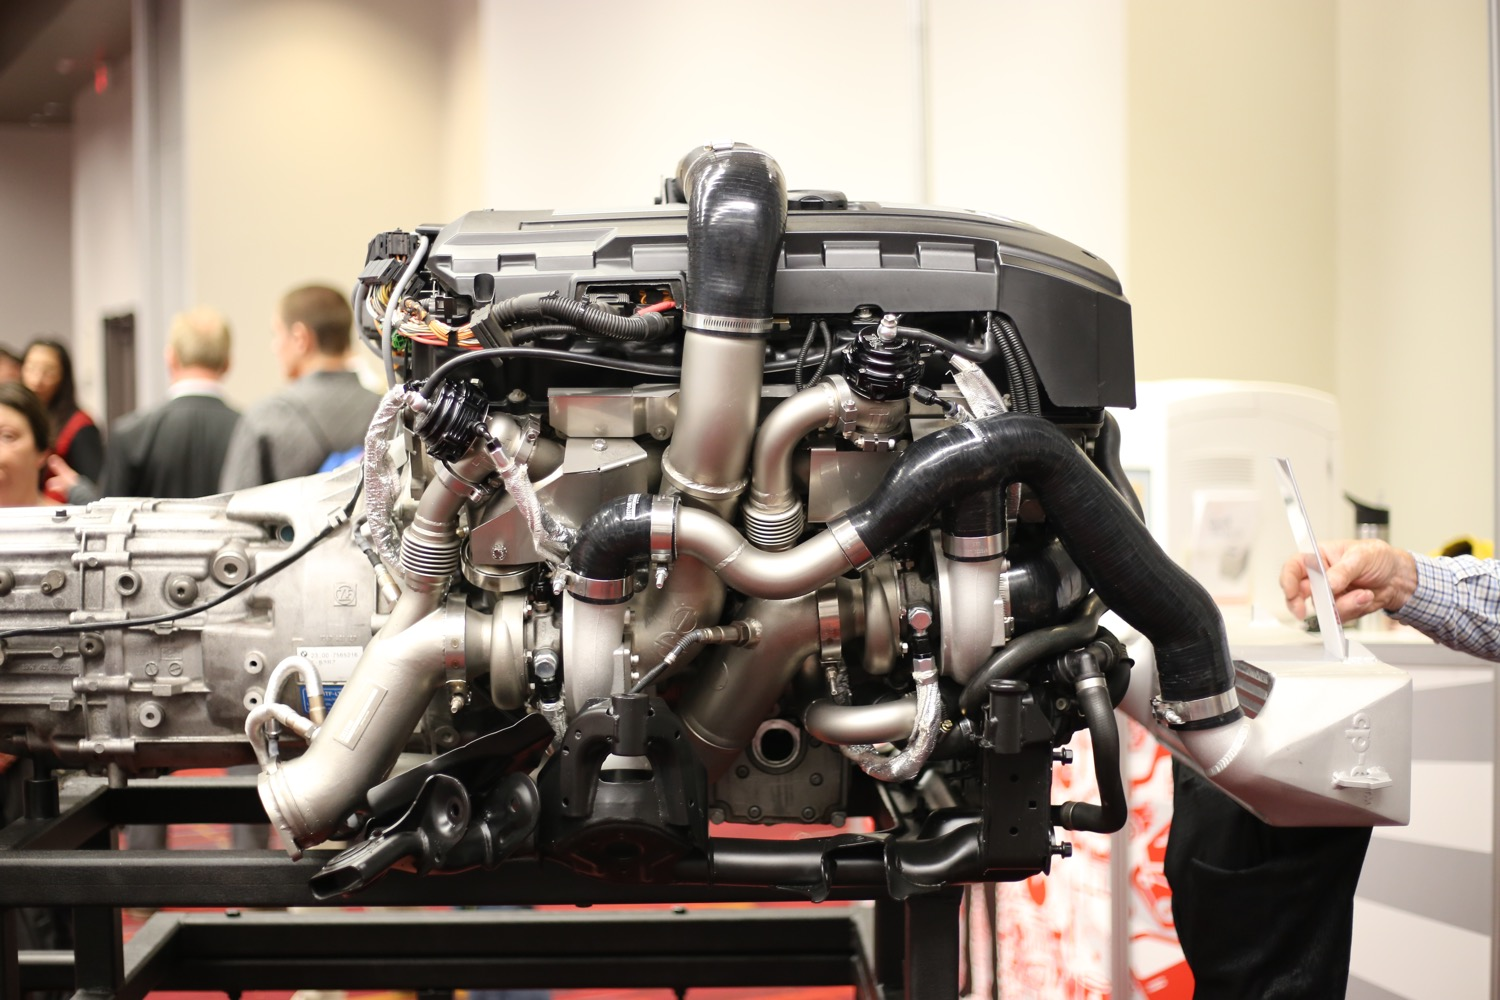 To Install The Large Twin Gt3071s On Our Project Car We Removed The Motor From The Chassis And Fitted The Turbo Kit